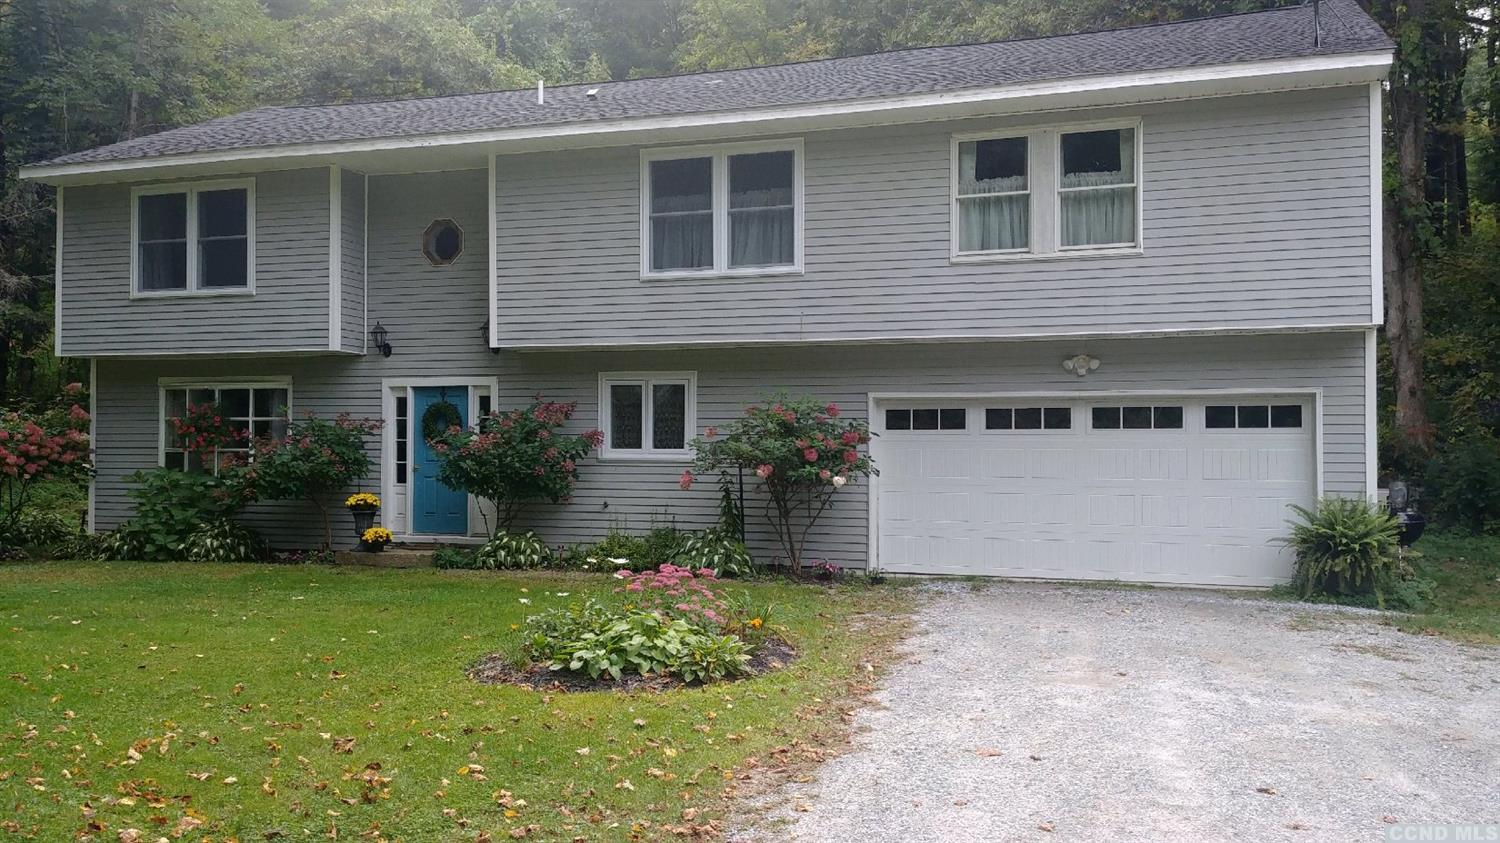 <div>Beautifully maintained Garrison Colonial conveniently situated close to the Berkshires, TSP, ski areas and only 25 minutes to Albany. Lots of natural light in this tastefully remodeled gem.</div><div>Three or four bedrooms, 2 and a half baths. Wonderful upstairs family room/bonus room. Master Bedroom ensuite with walk in closet. Wide plank and oak flooring throughout. Lots of room for entertaining. Propane high efficiency Bosch boiler, radiant heat, AC. Additional piece of land next door available for purchase.</div>